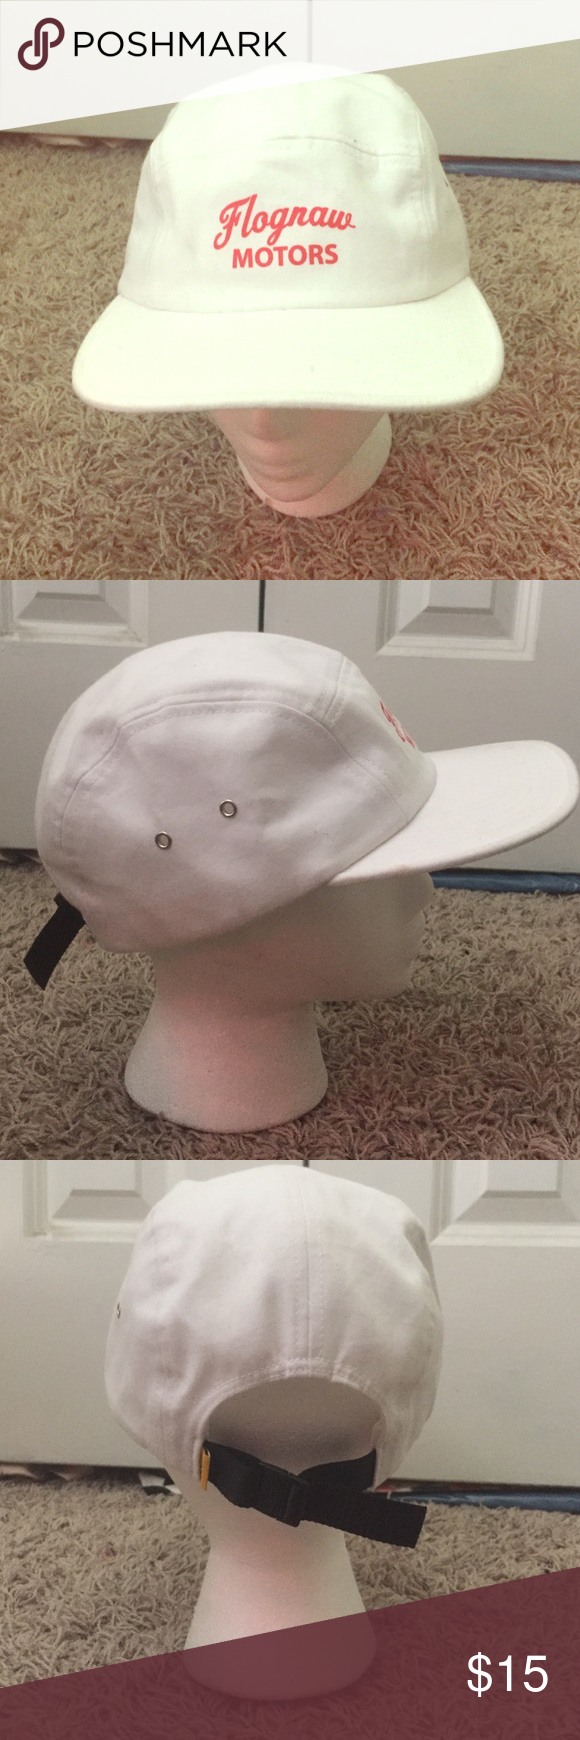 6ca3ef02f2a77d Golf · OFFICAL TYLER THE CREATOR FLOGNAW MOTORS HAT - NEW never worn! great  condition. from